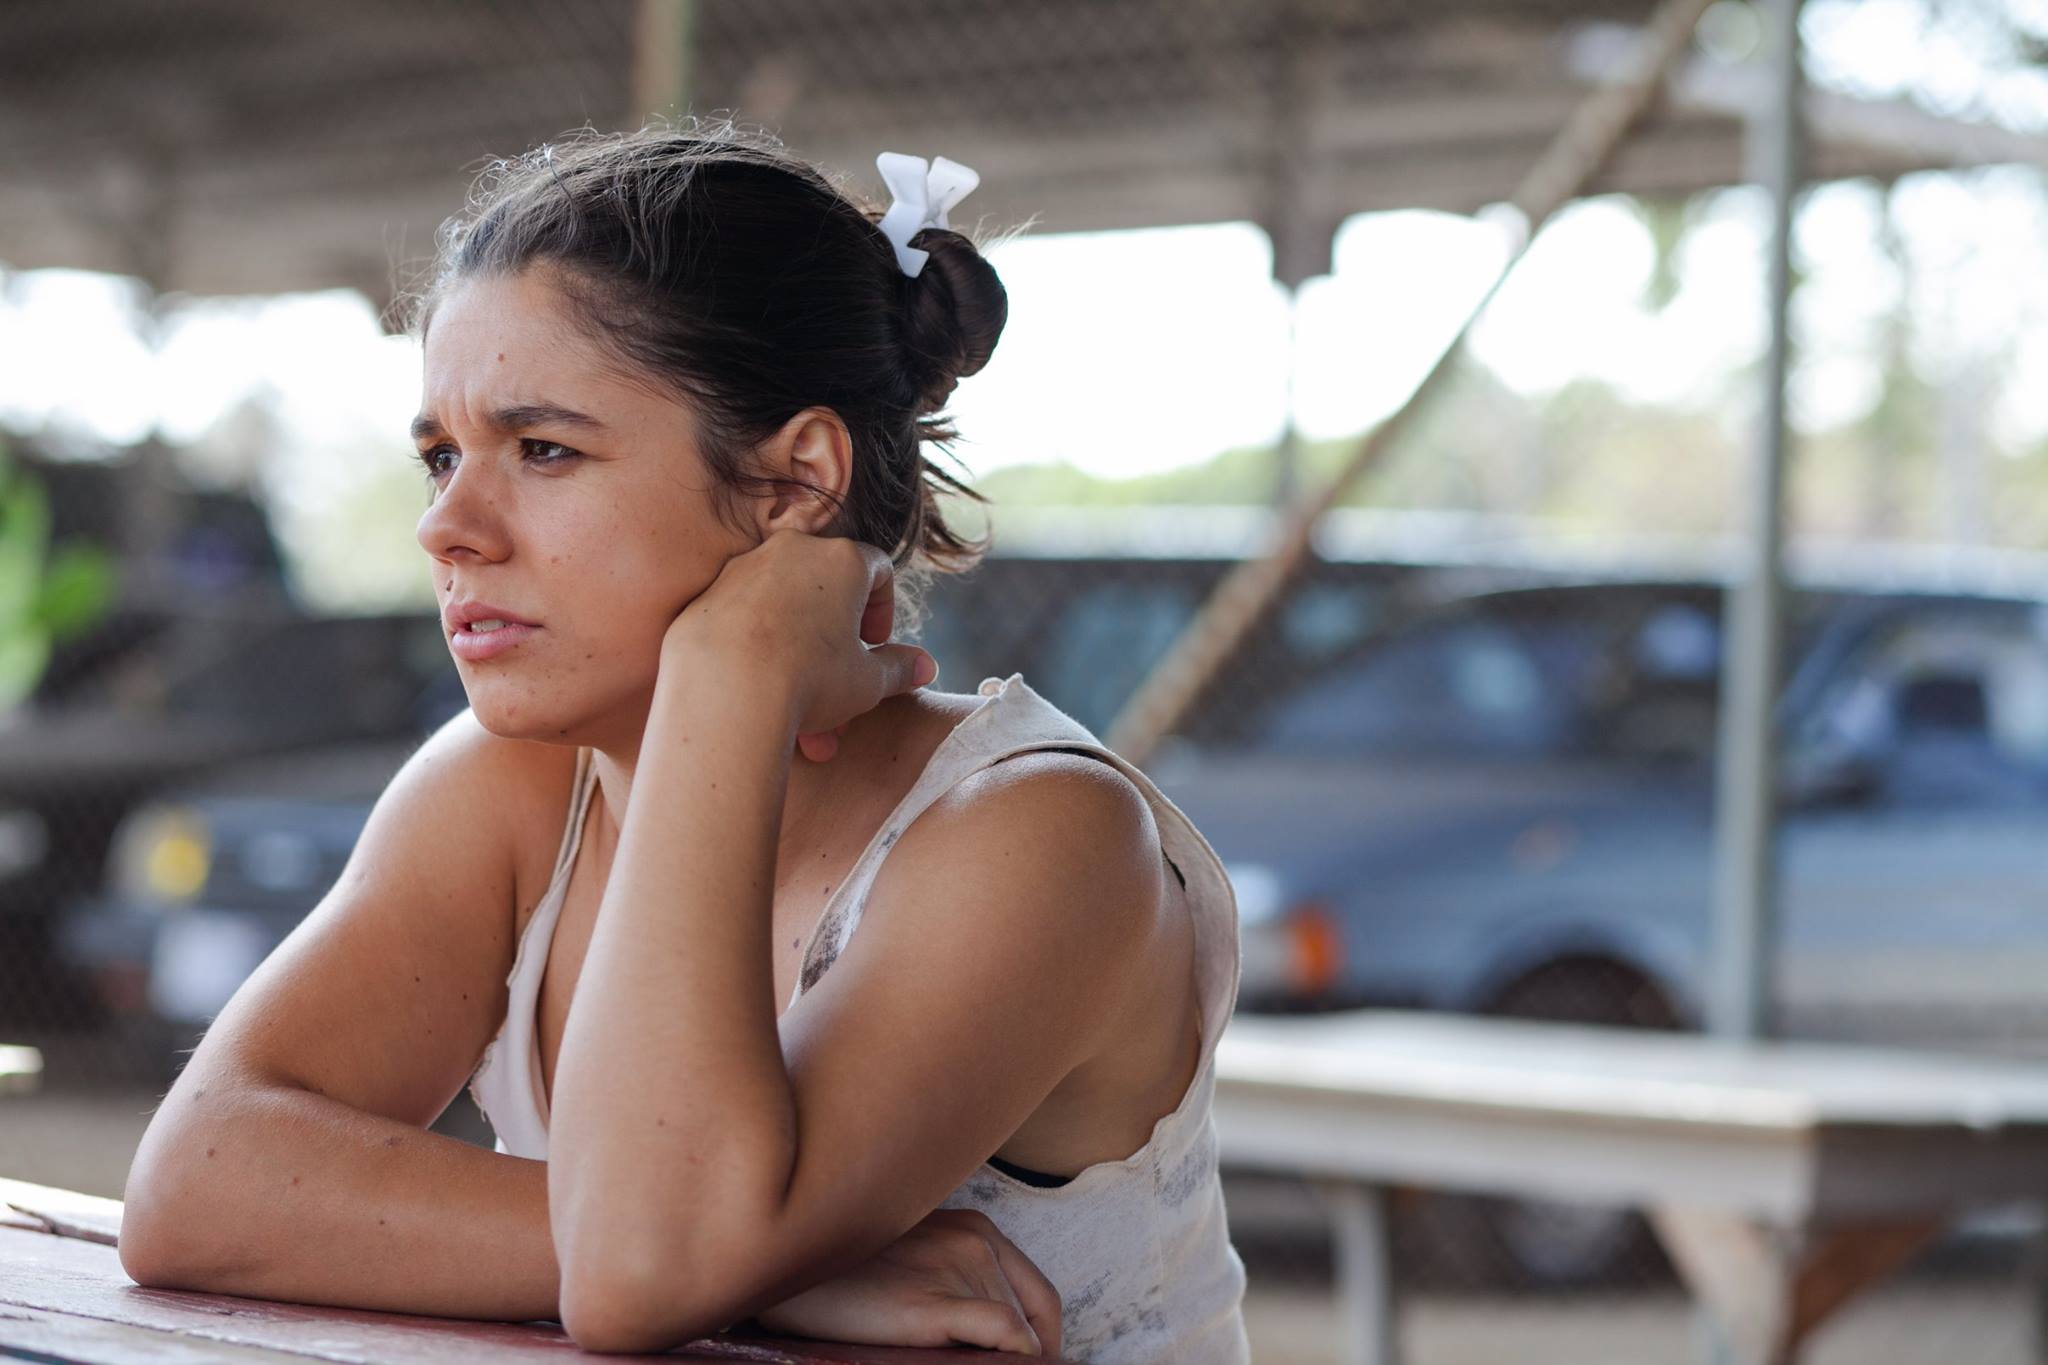 Costa Rica's First-Ever Oscar Entry Is Now Available for Streaming on Netflix